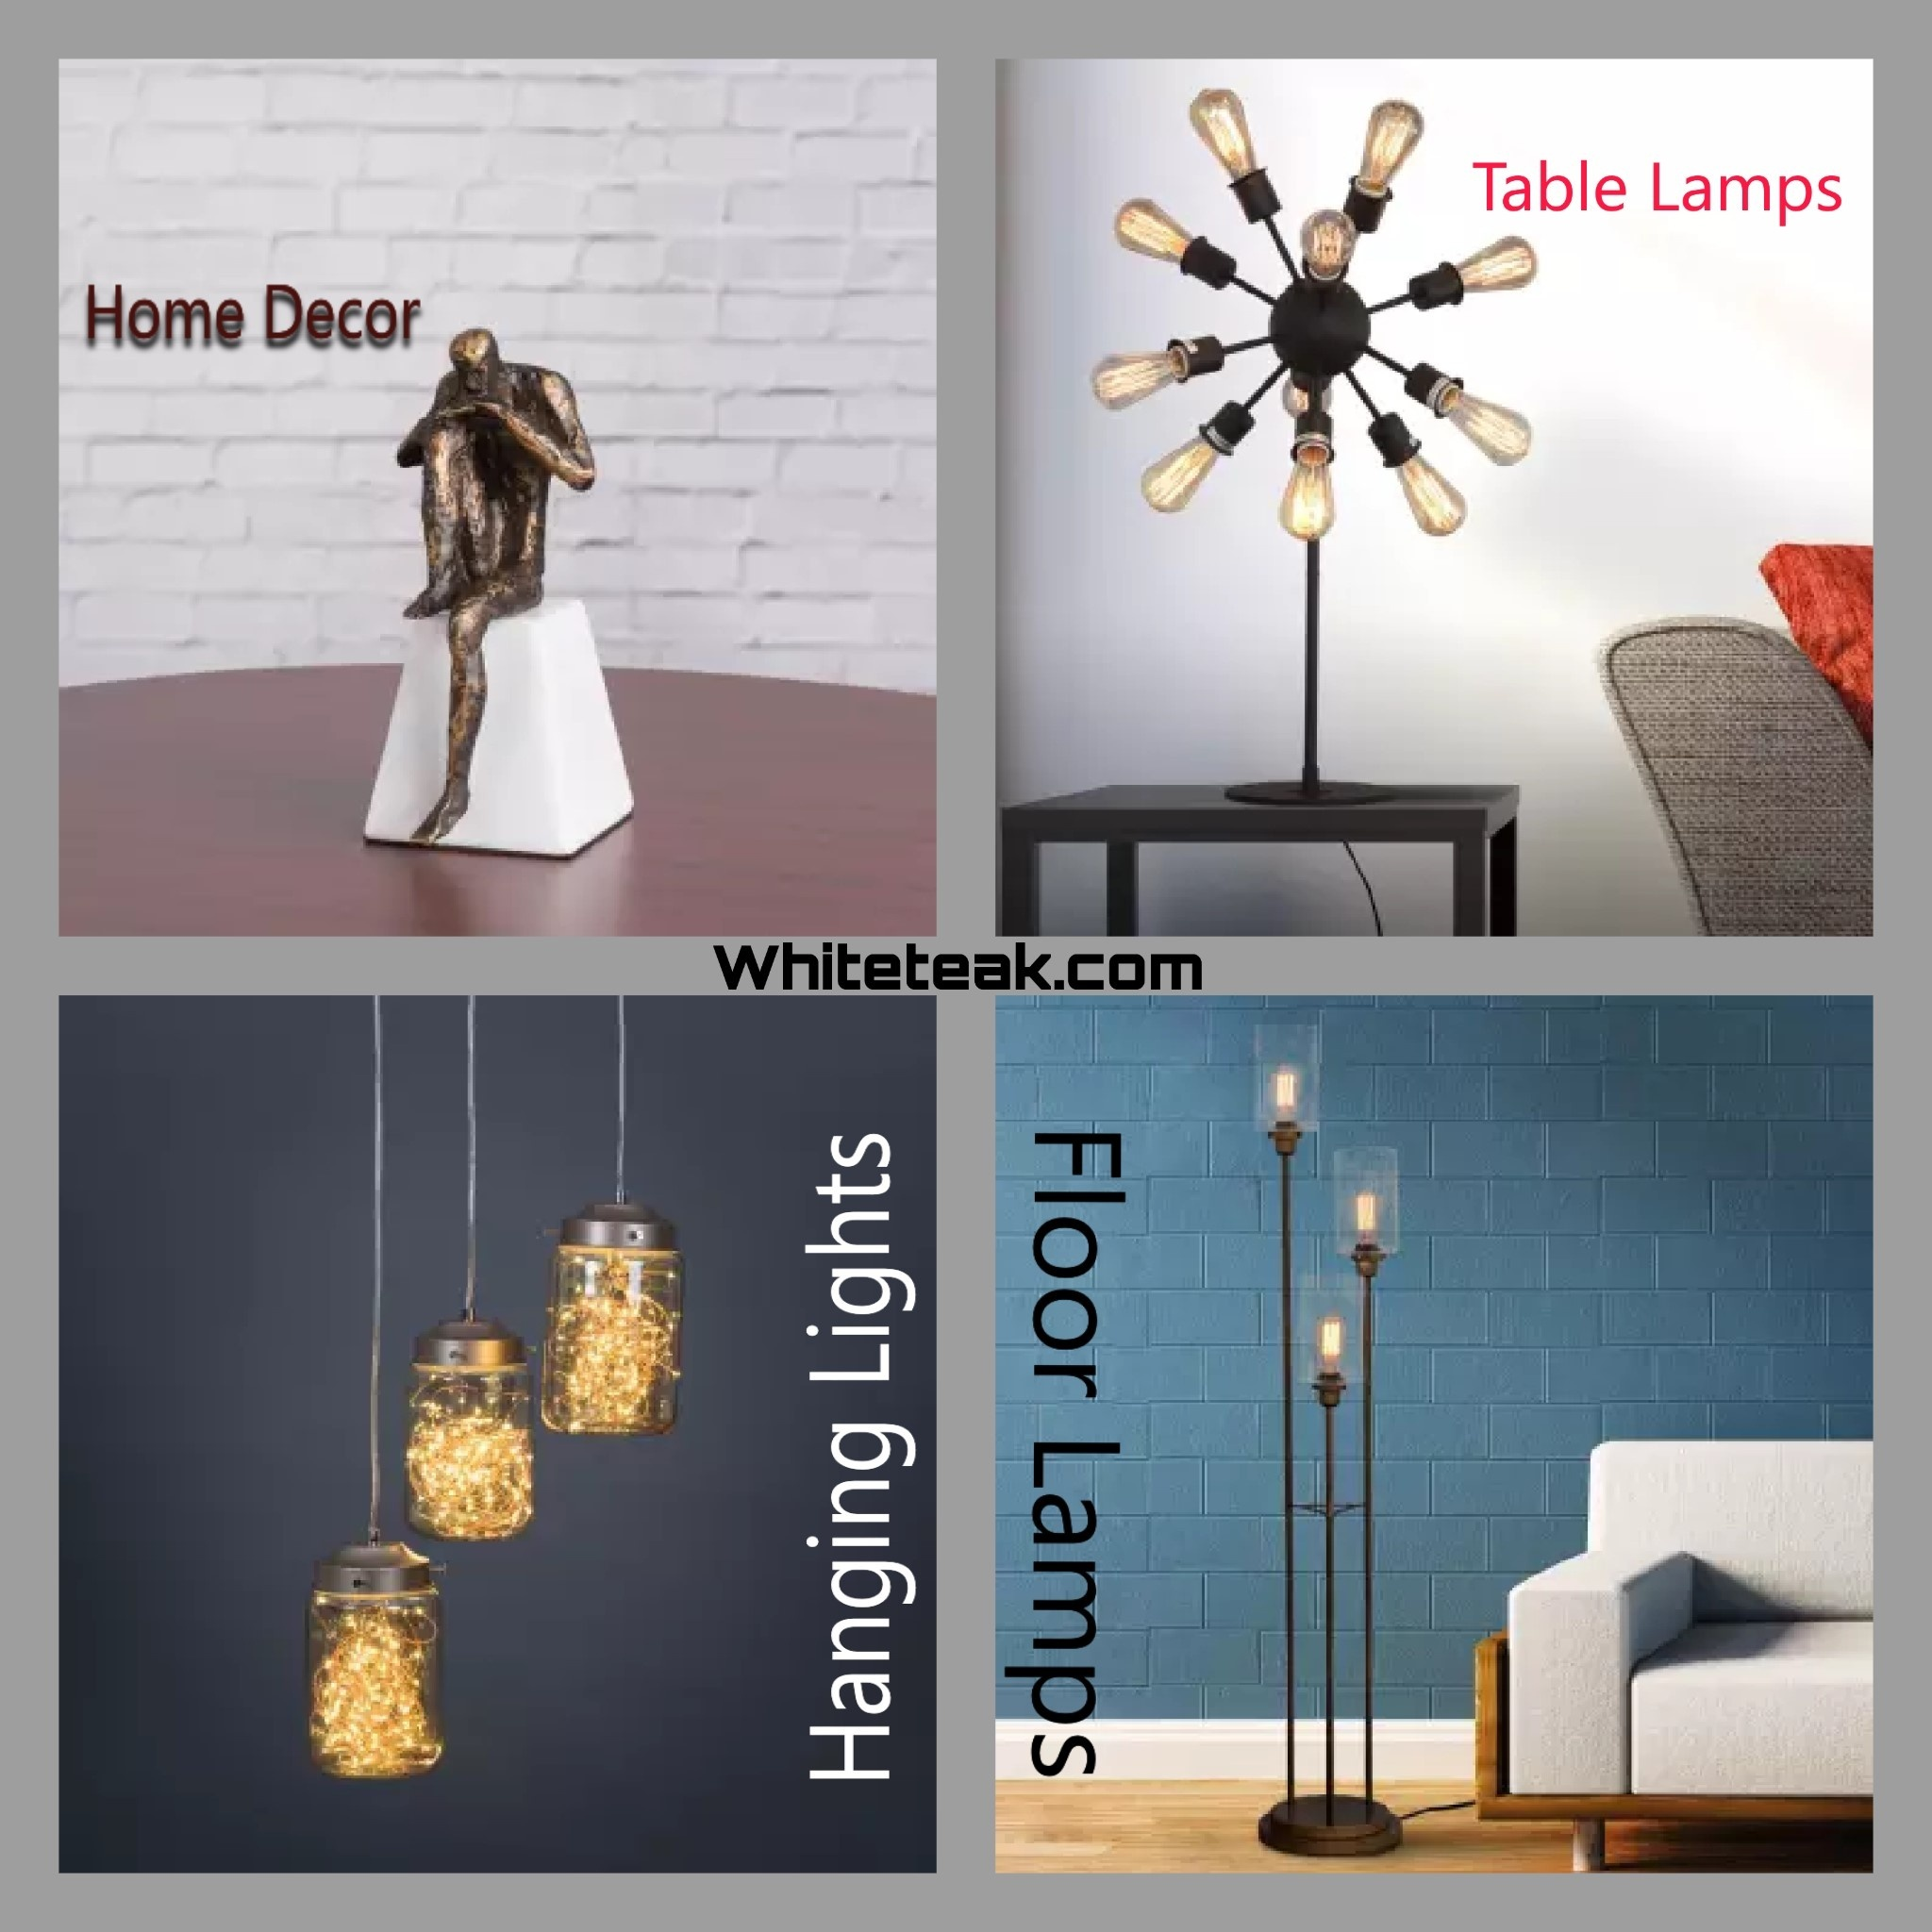 Where Can I Find Home Decorative Lights And Lamps In Pune Quora